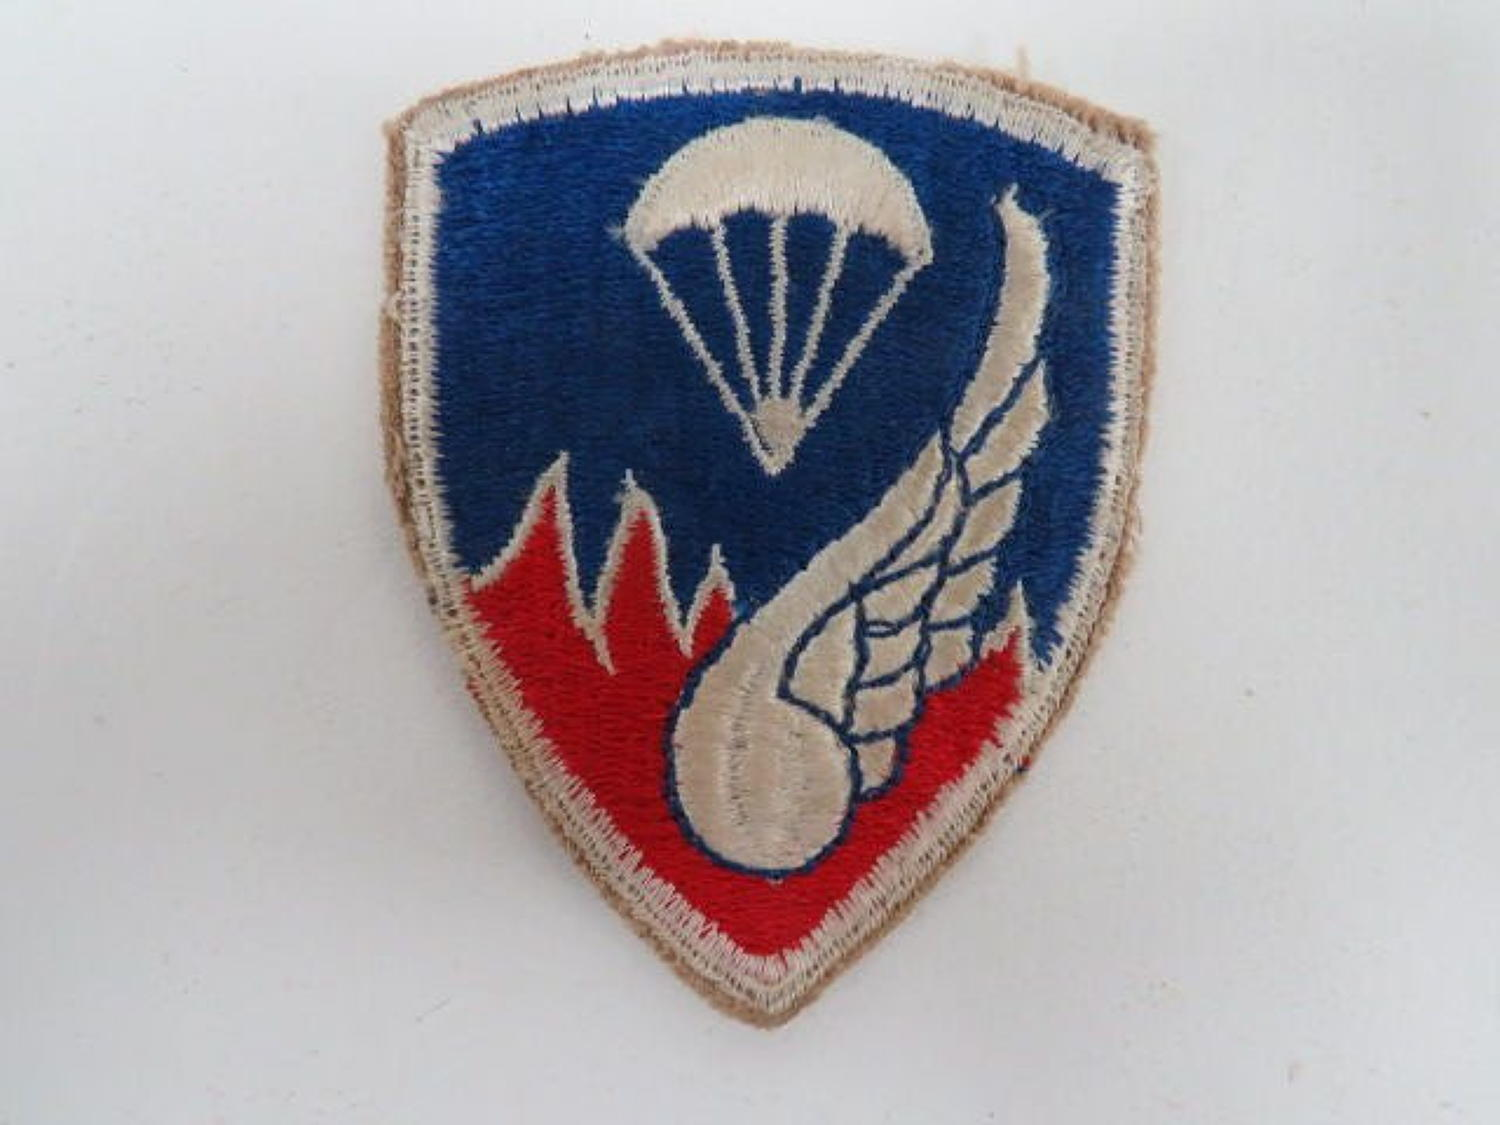 American 187th Regimental Combat Team Formation Badge